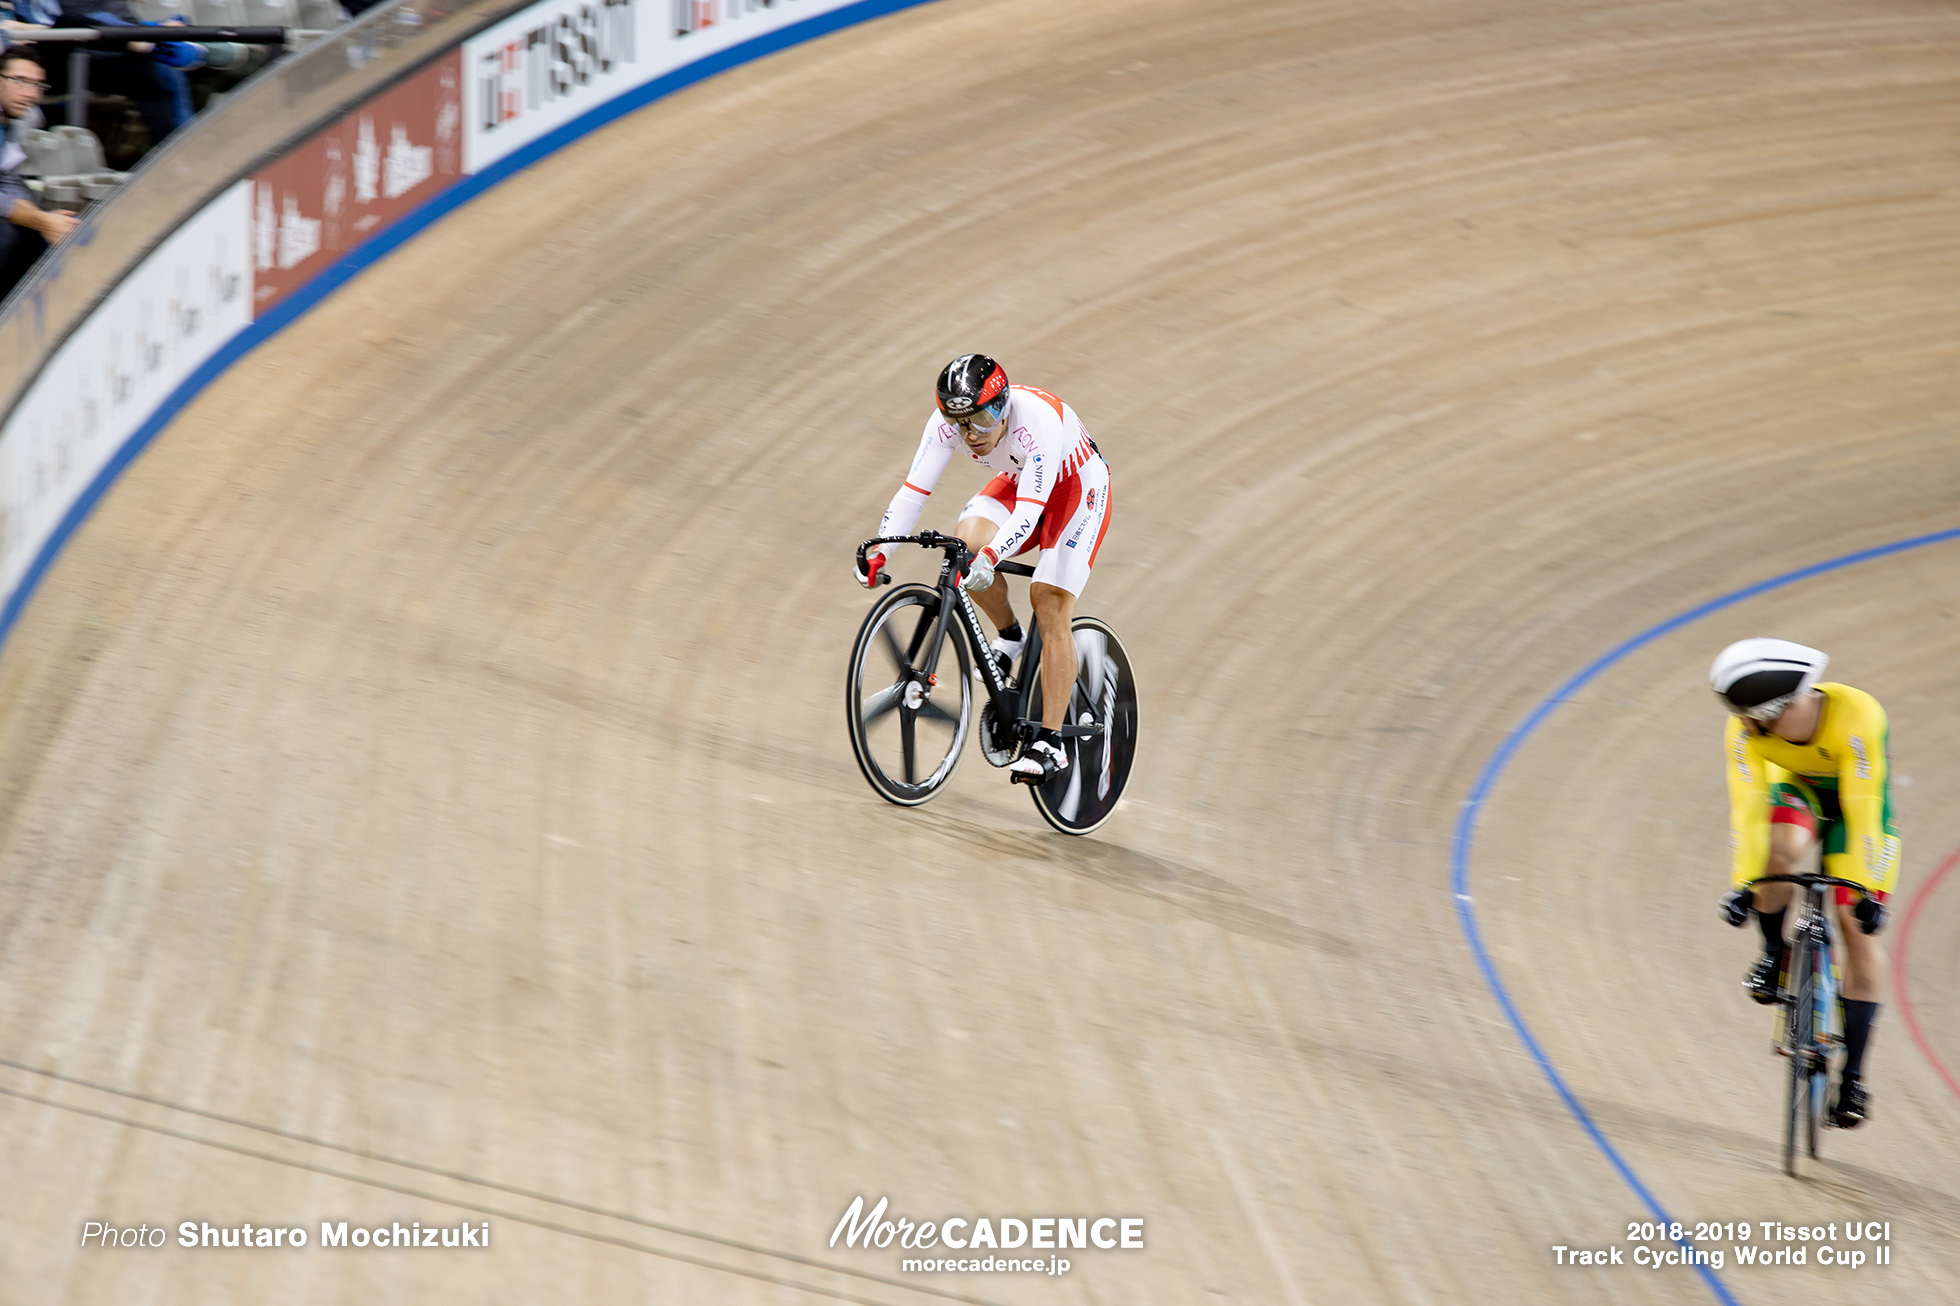 2018-2019 Tissot UCI Track Cycling World Cup II Men's Sprint 1st Round